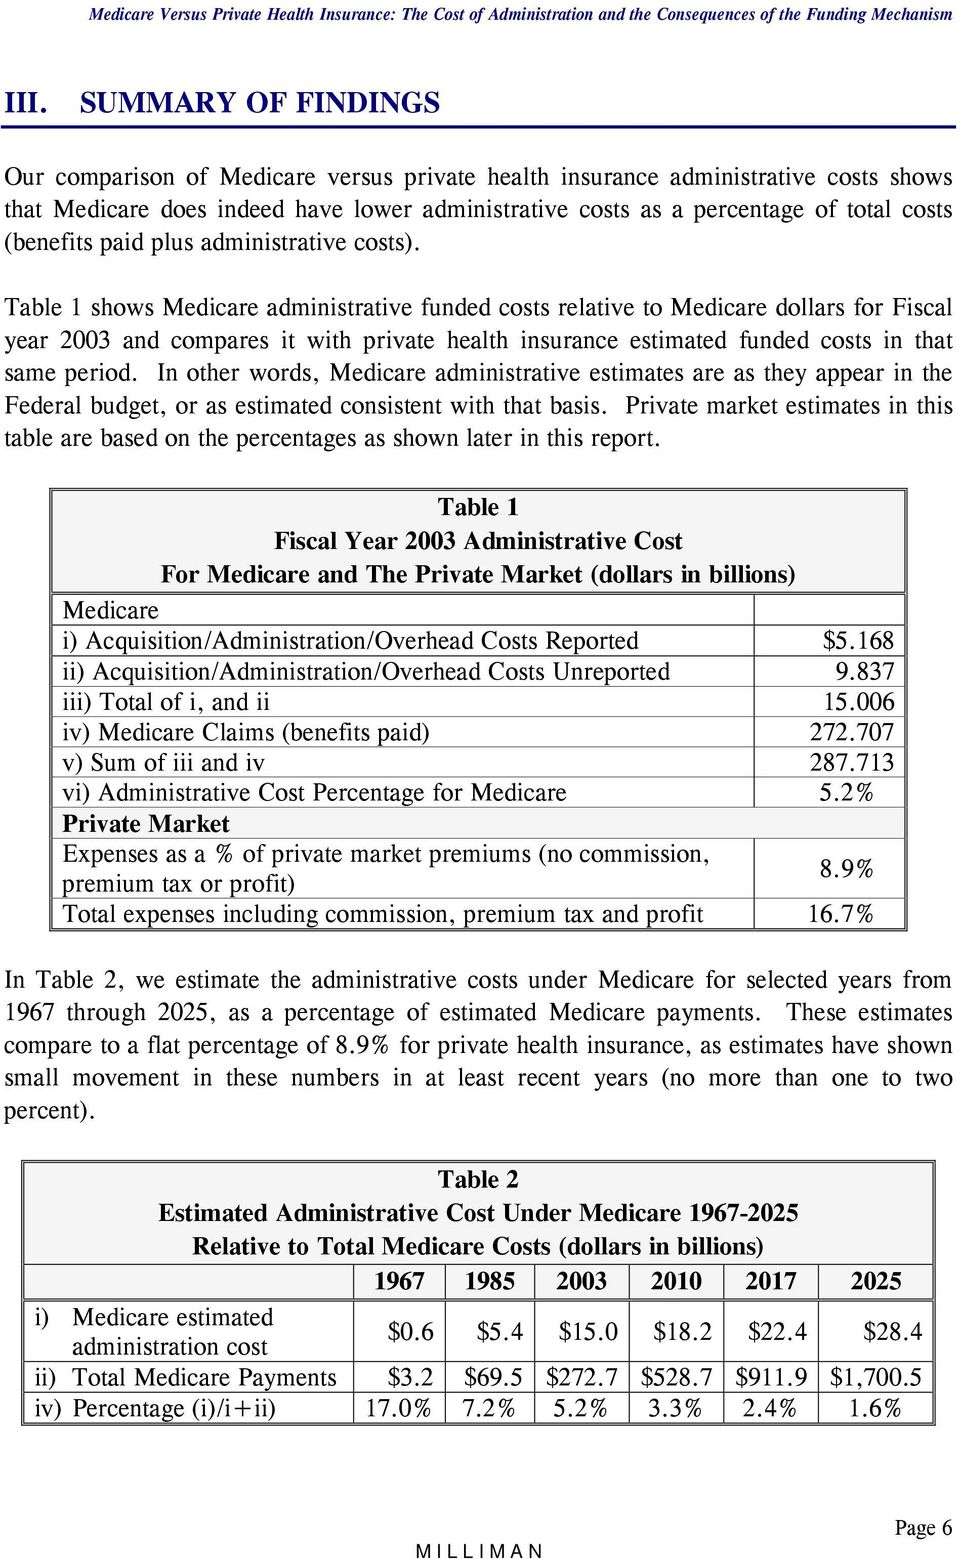 Table 1 shows Medicare administrative funded costs relative to Medicare dollars for Fiscal year 2003 and compares it with private health insurance estimated funded costs in that same period.